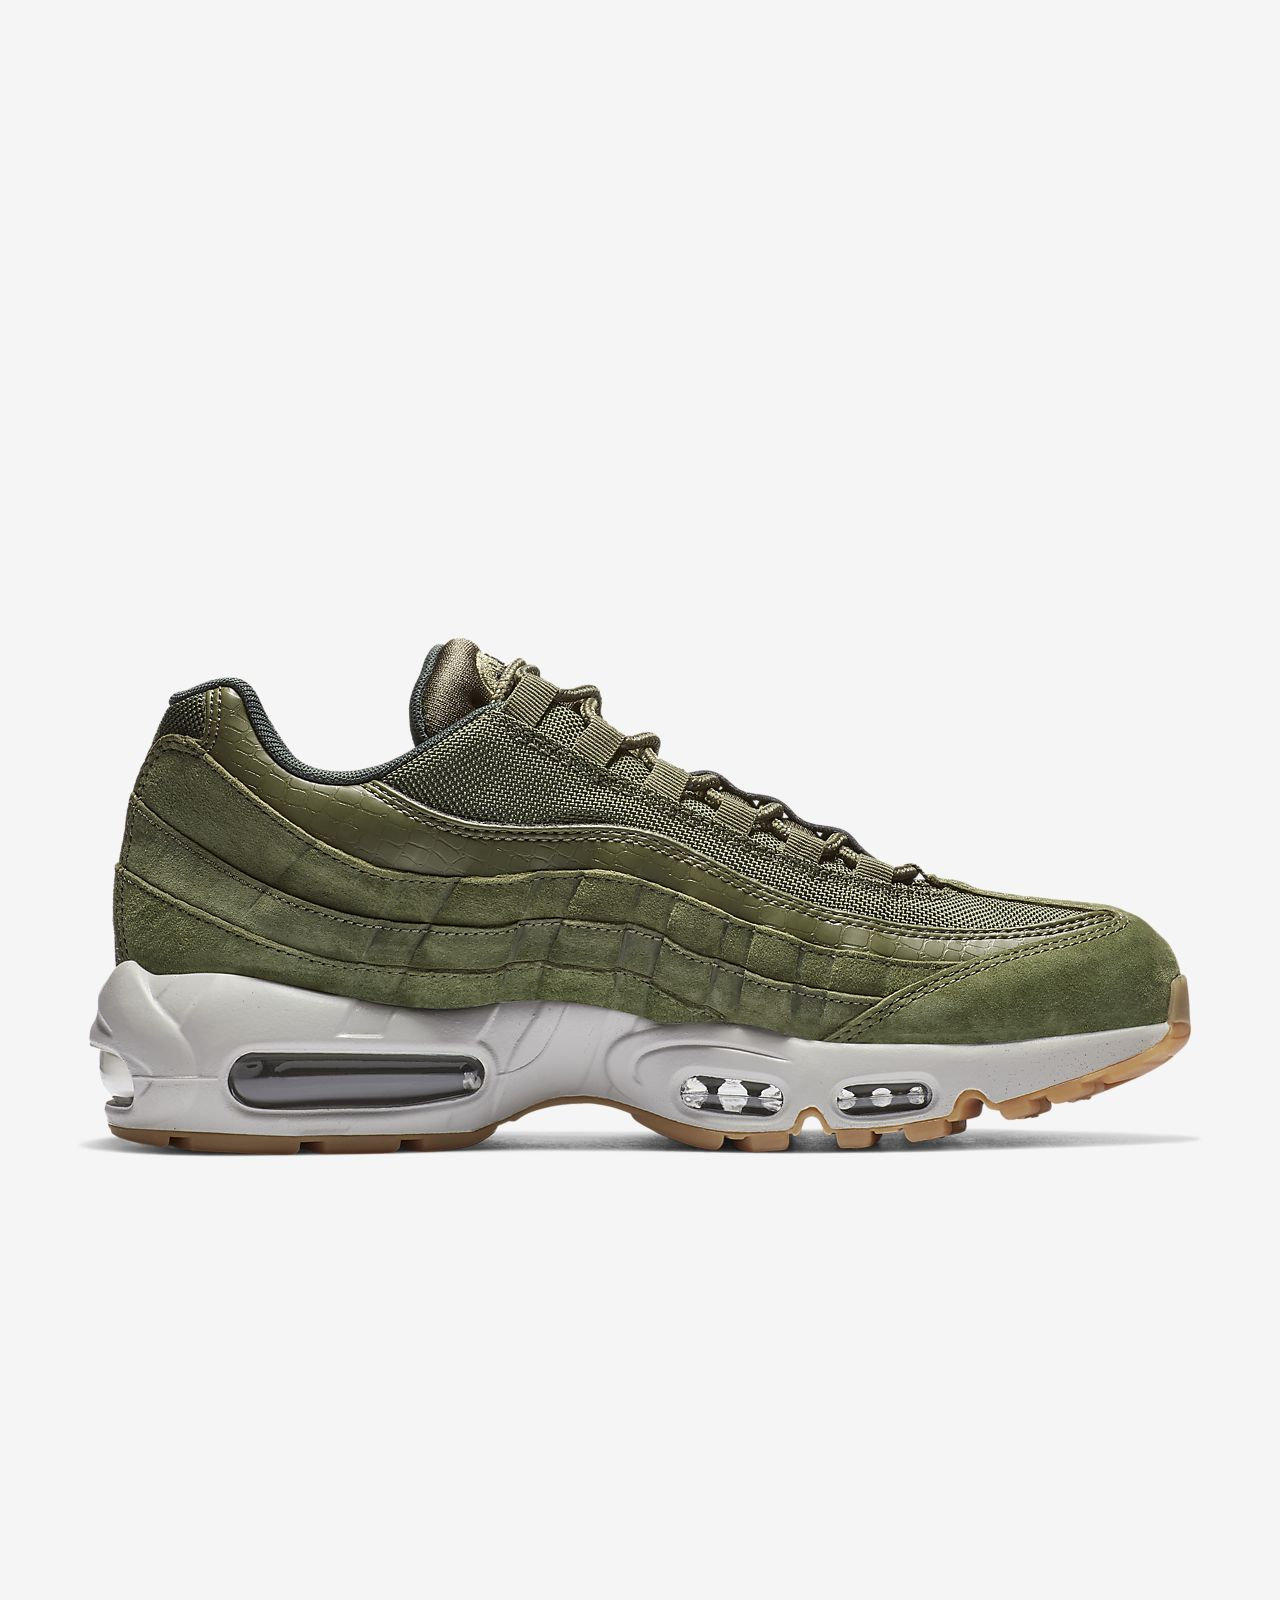 b0844f64f8 Nike Air Max 95 SE Men's Shoe. Nike.com CA